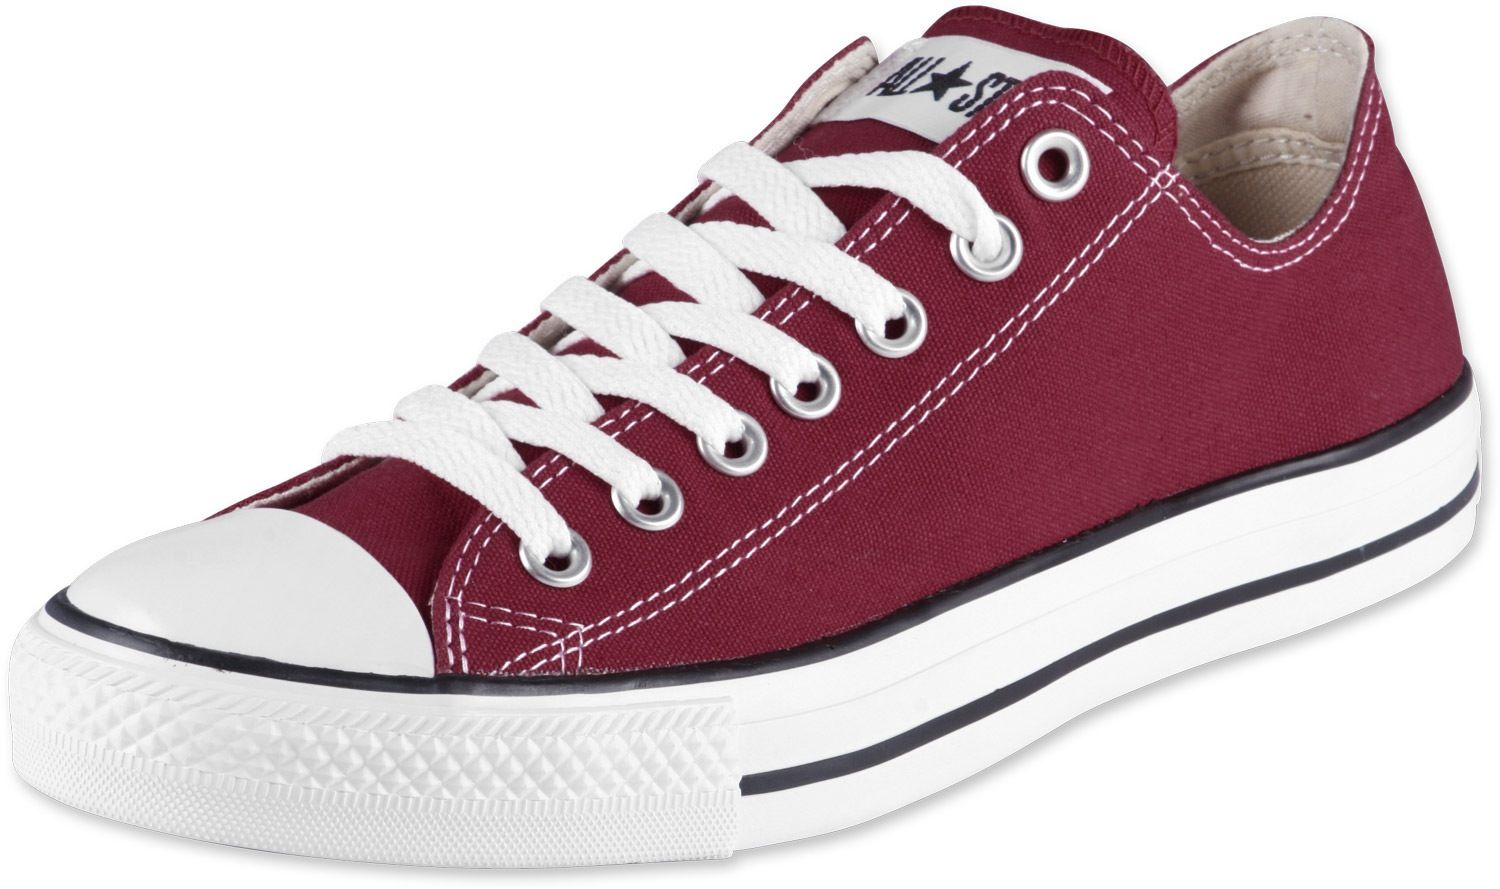 Maroon:) | Chaussures bordeaux, Chaussures converse ...